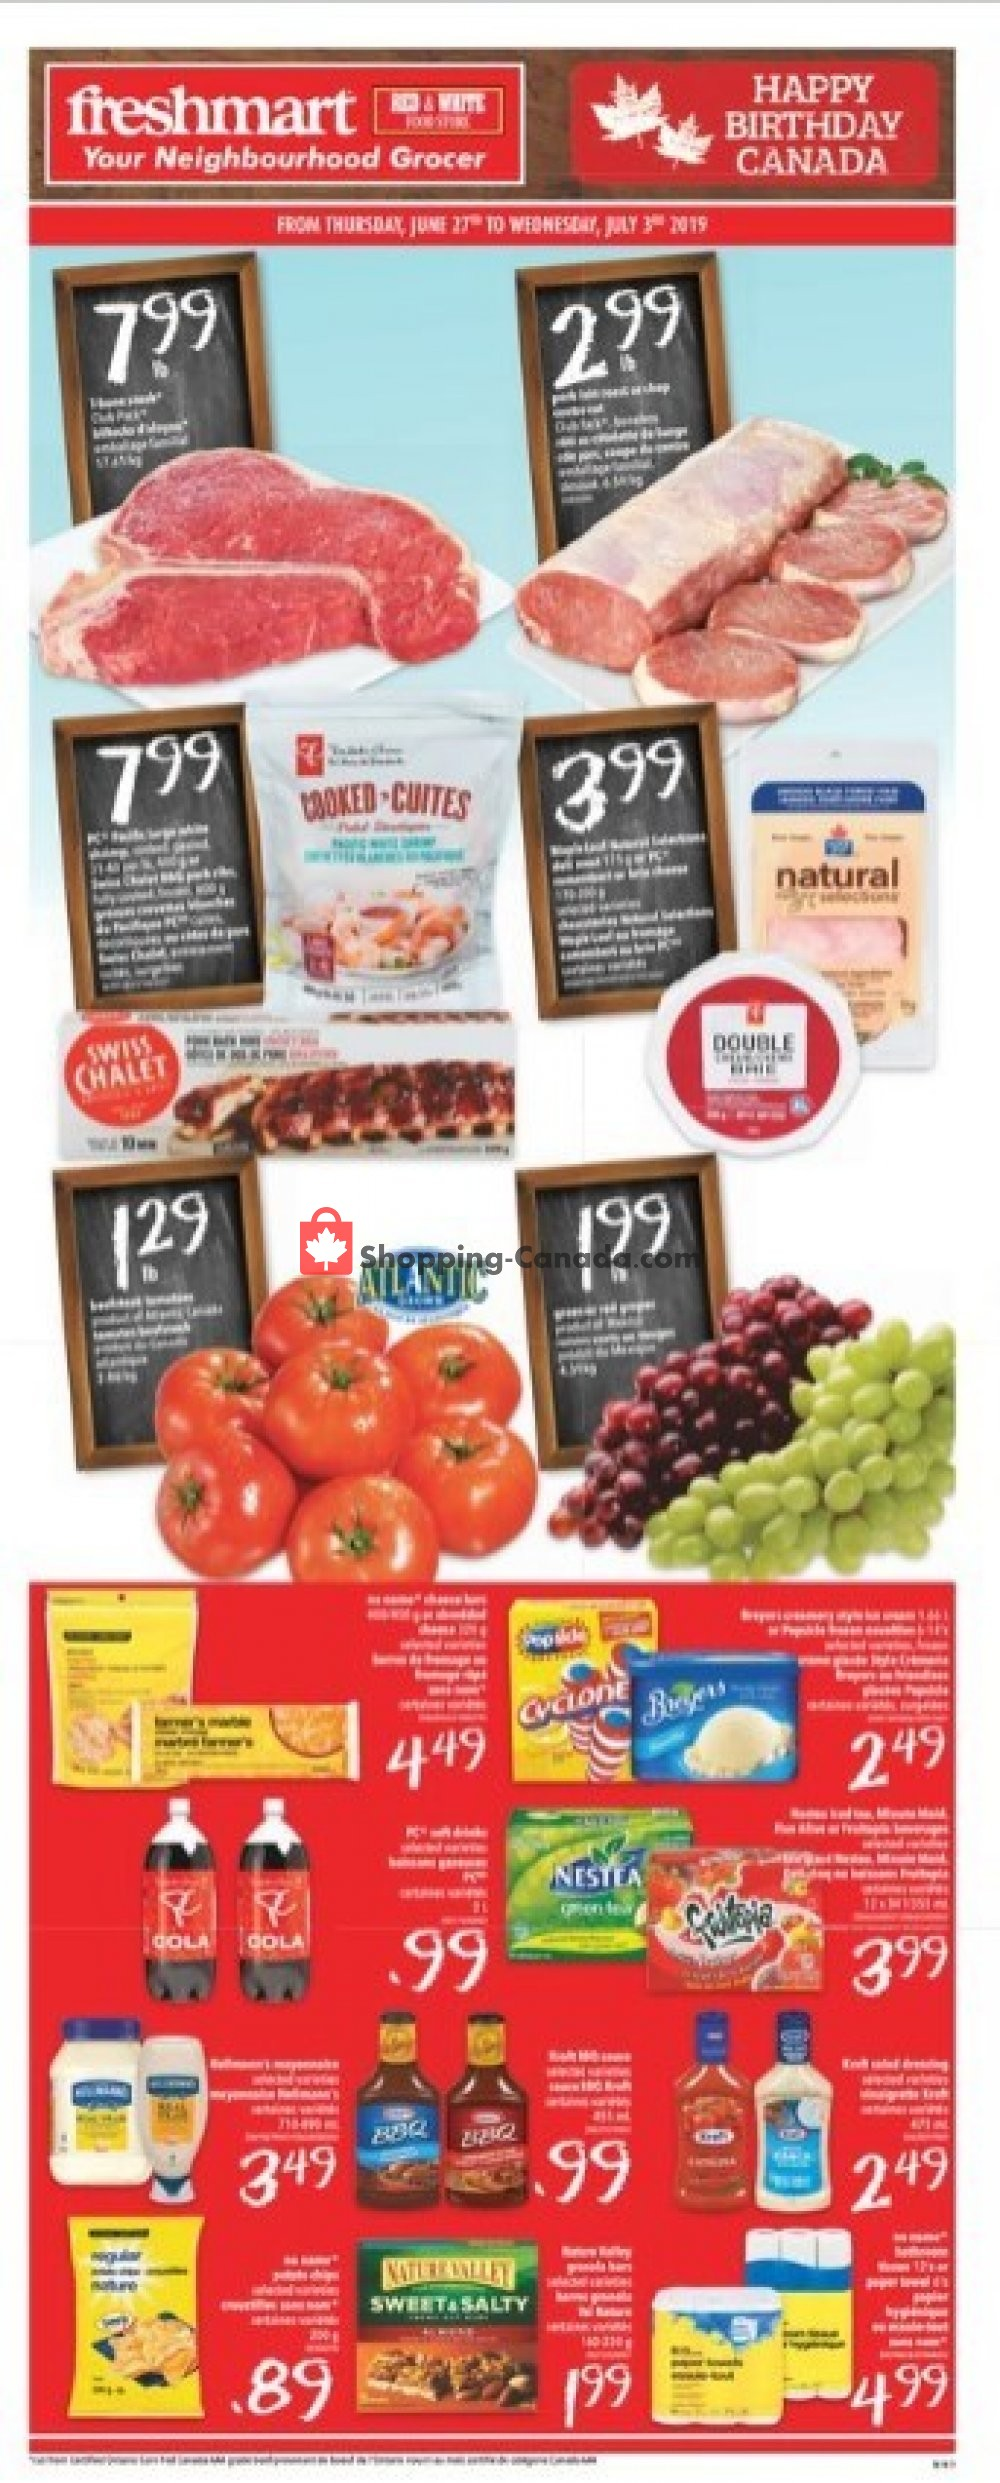 Flyer Freshmart Canada - from Thursday June 27, 2019 to Wednesday July 3, 2019